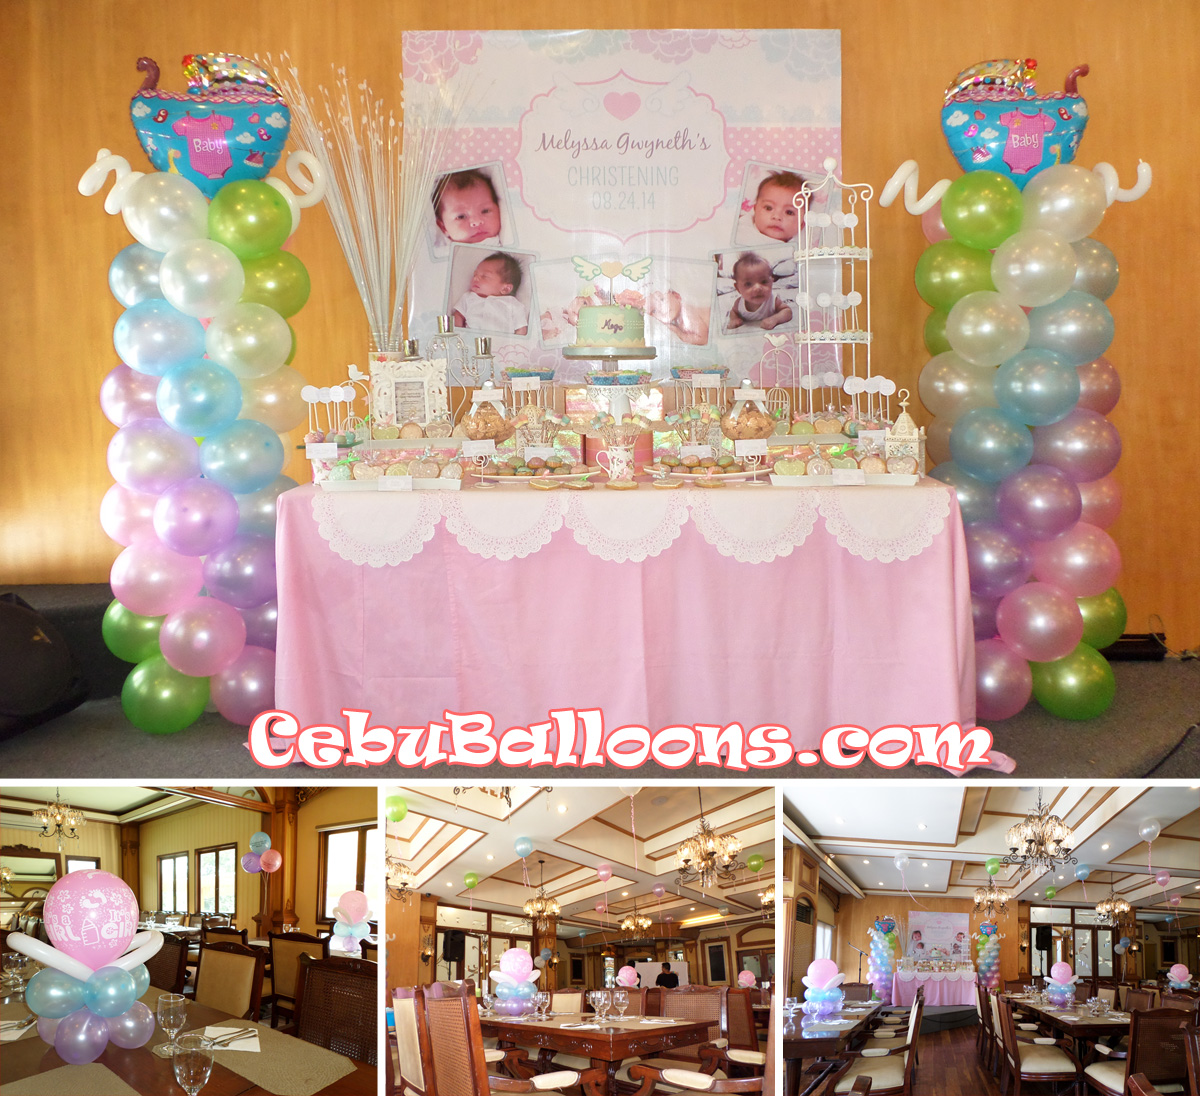 Pino restaurant cebu balloons and party supplies